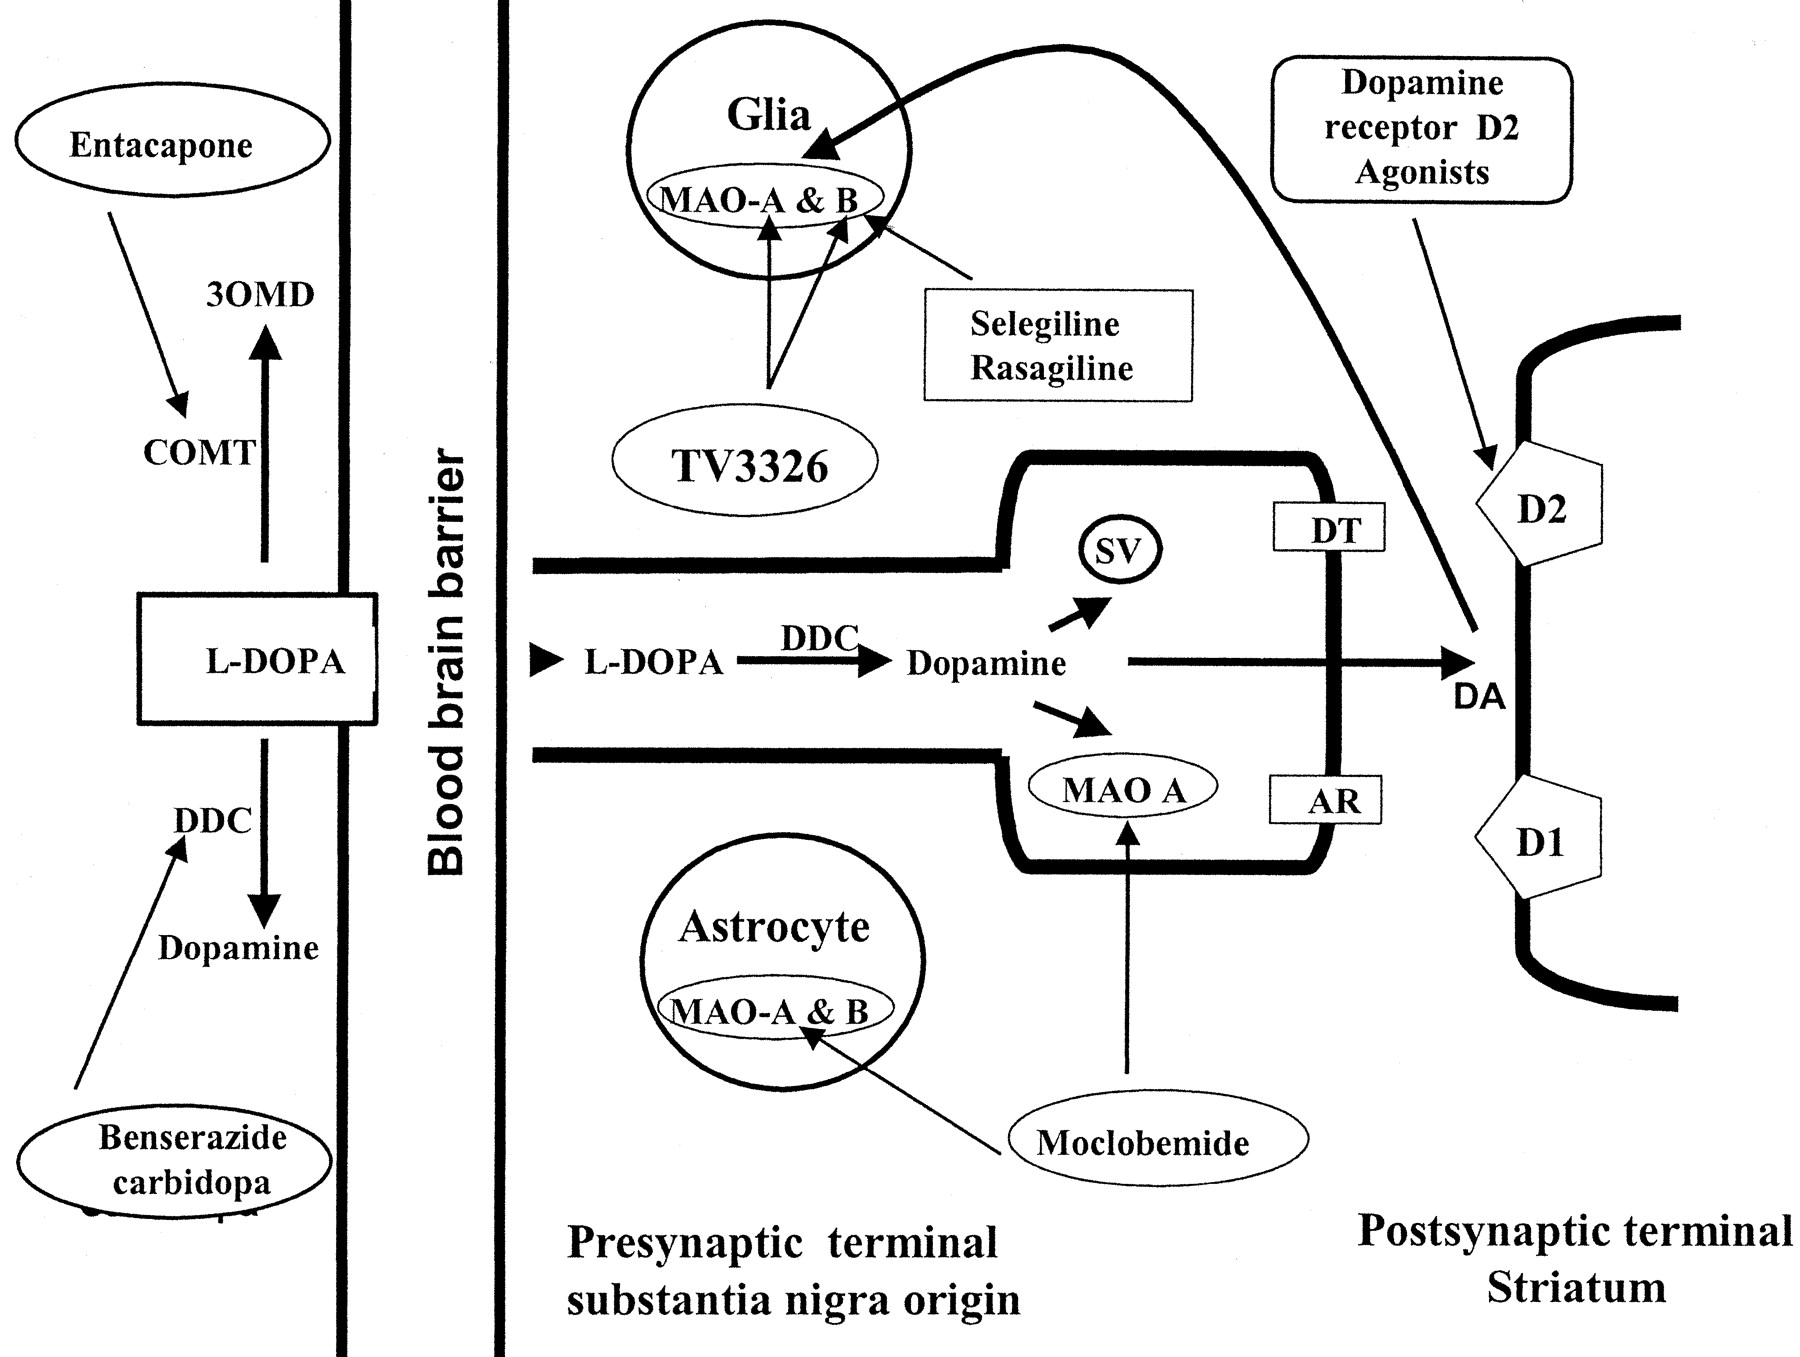 A review of the mechanisms and role of monoamine oxidase